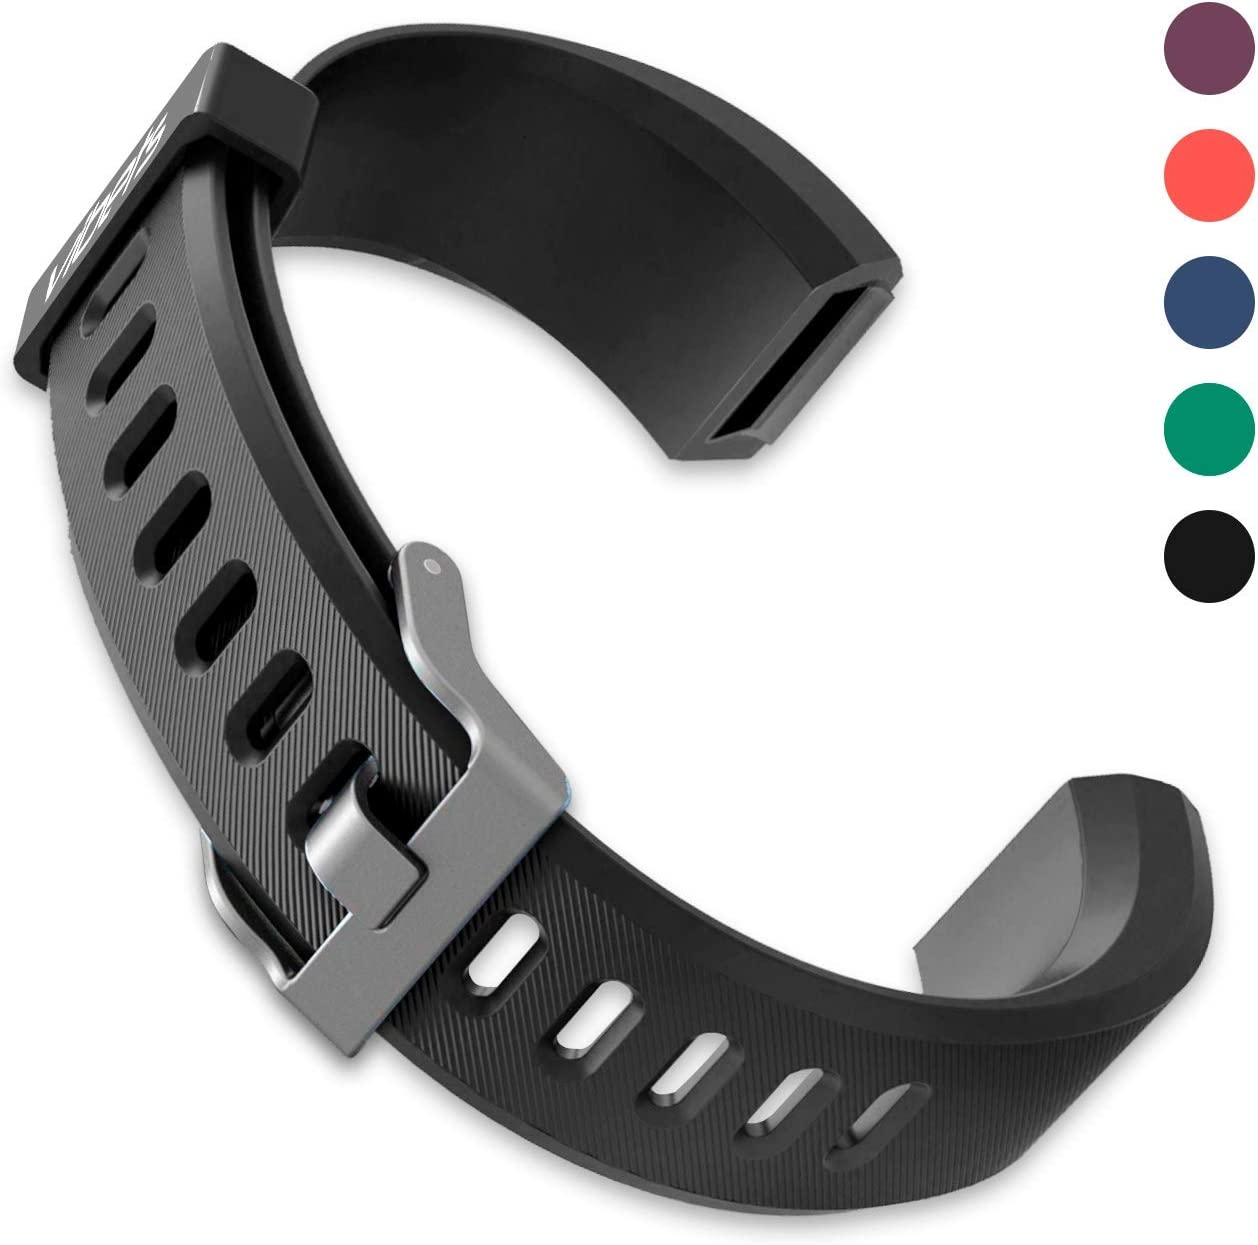 VIBETS Pulse Original Replacement Band for Fitness Tracker ID115PlusHR (Black)